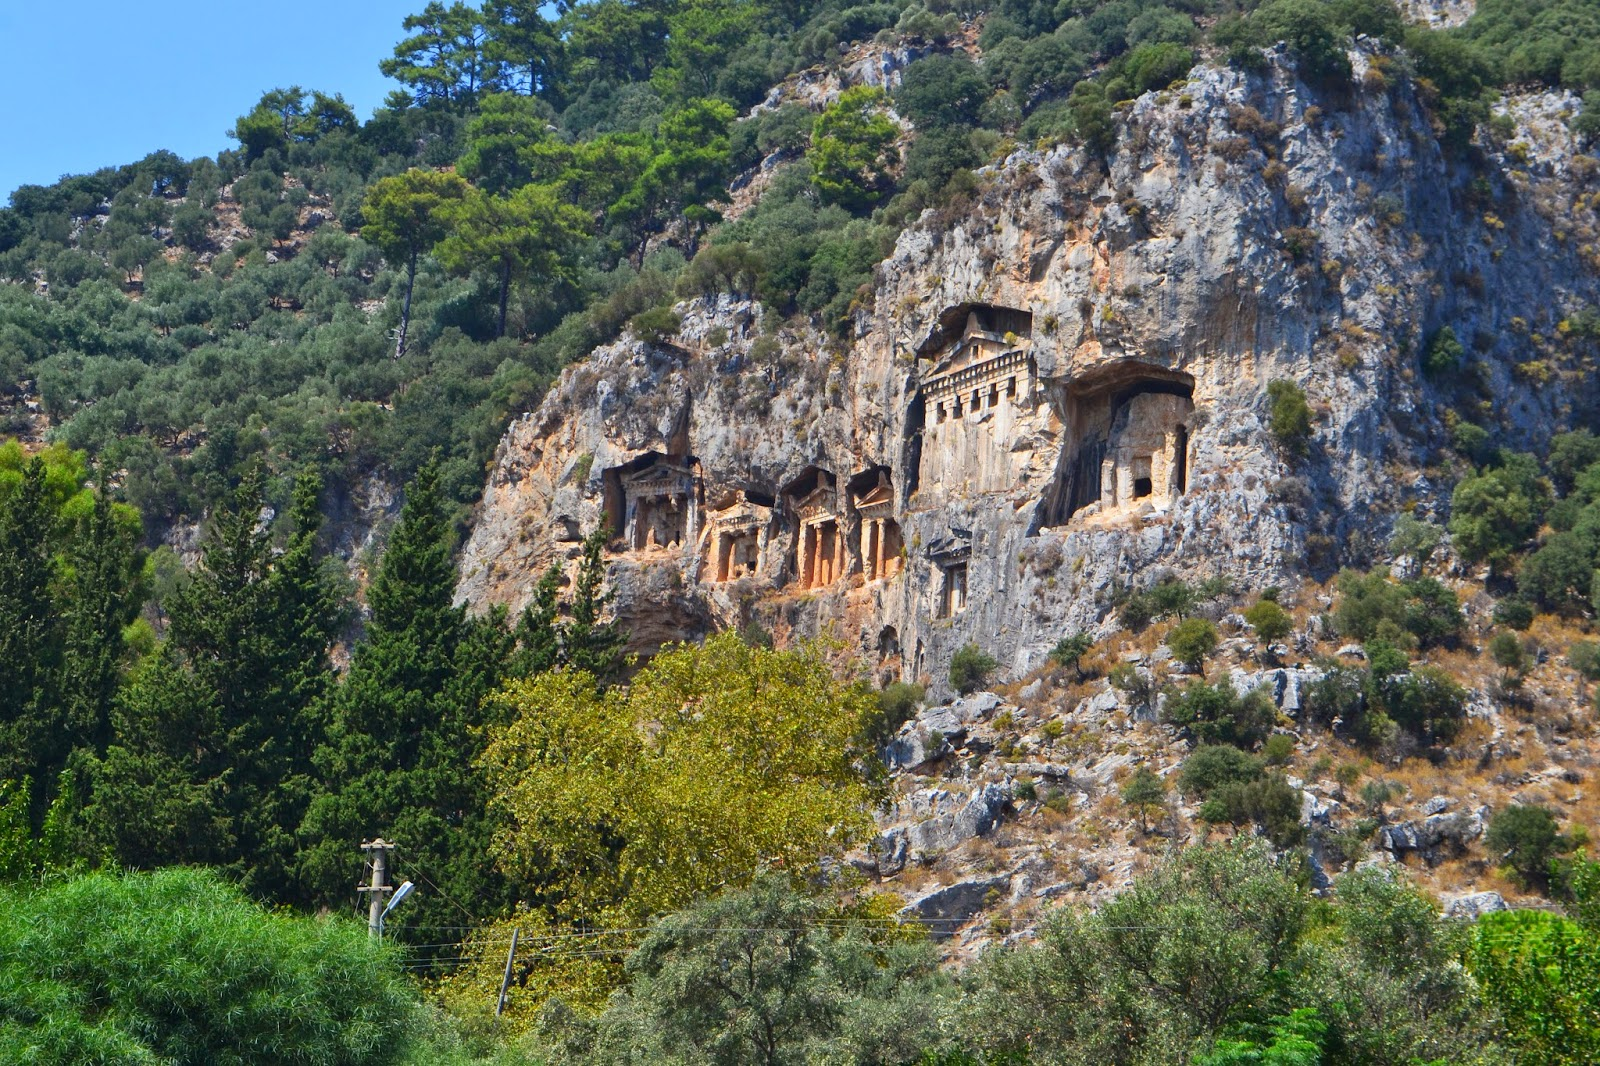 the carvings in the rocks at Dalyan